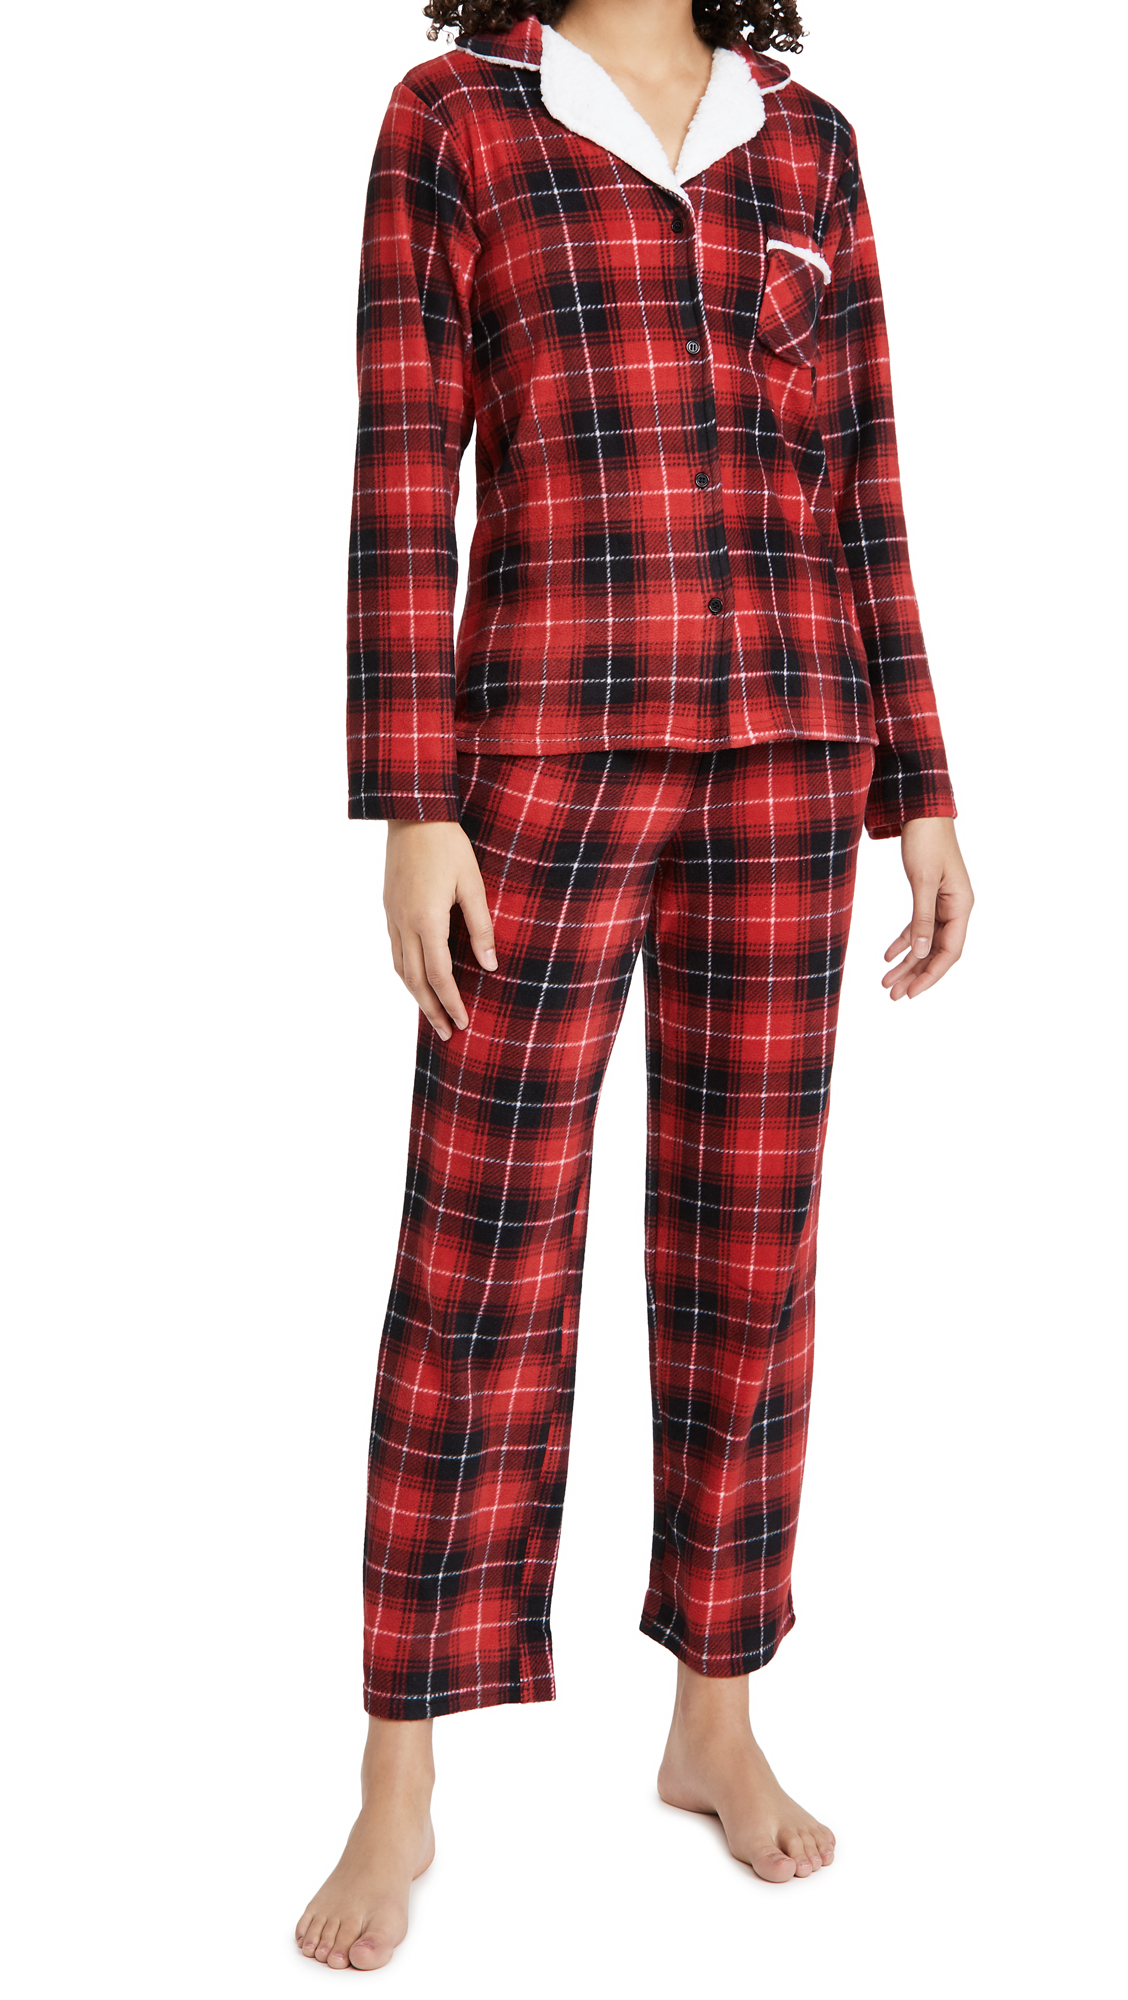 Emerson Road Heathcliffe Plaid Sherpa Collar PJ Set